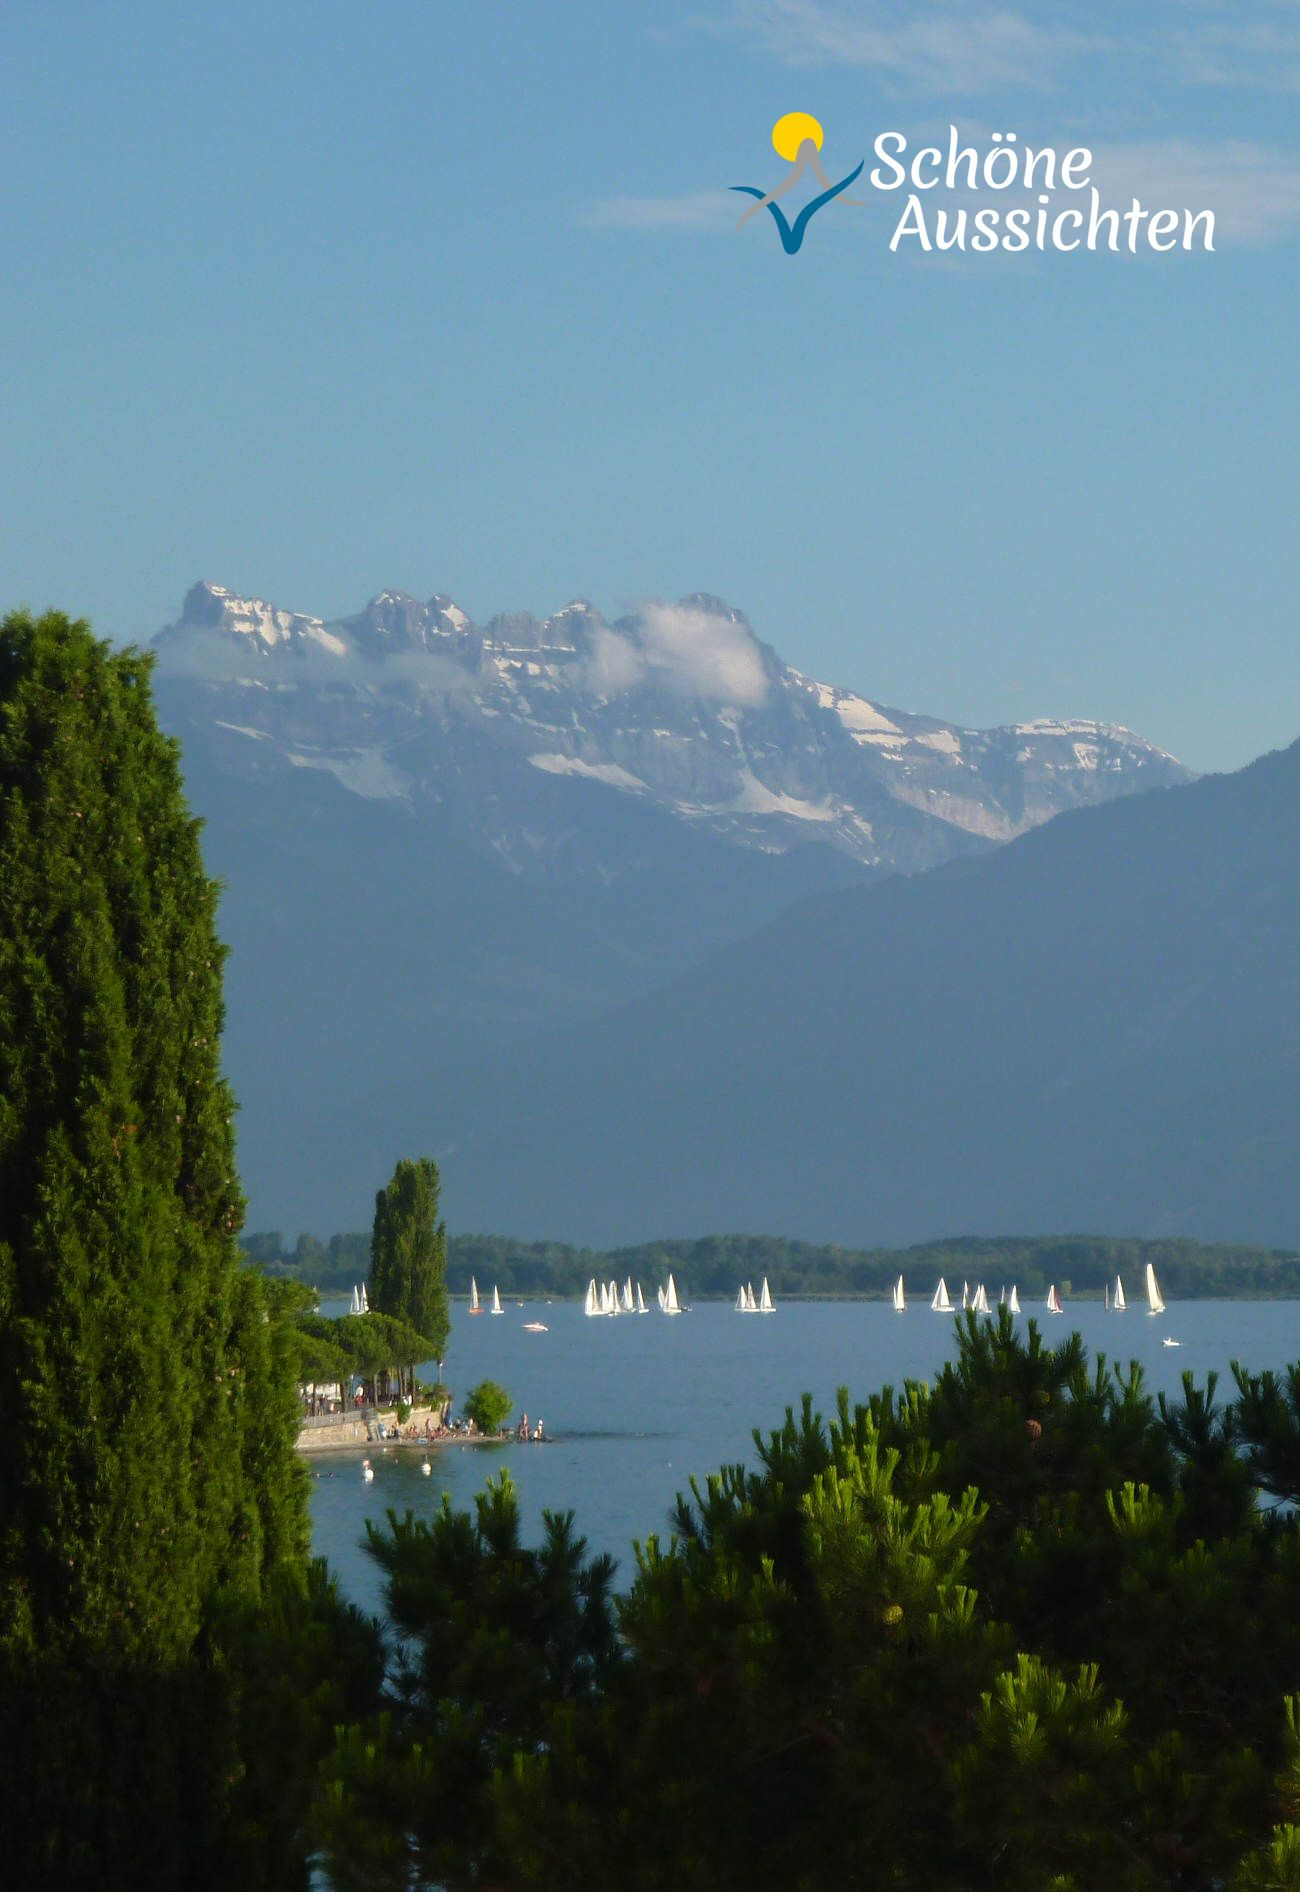 Sommer In Montreux Am Genfersee Lac Leman Schweiz Tour Schone